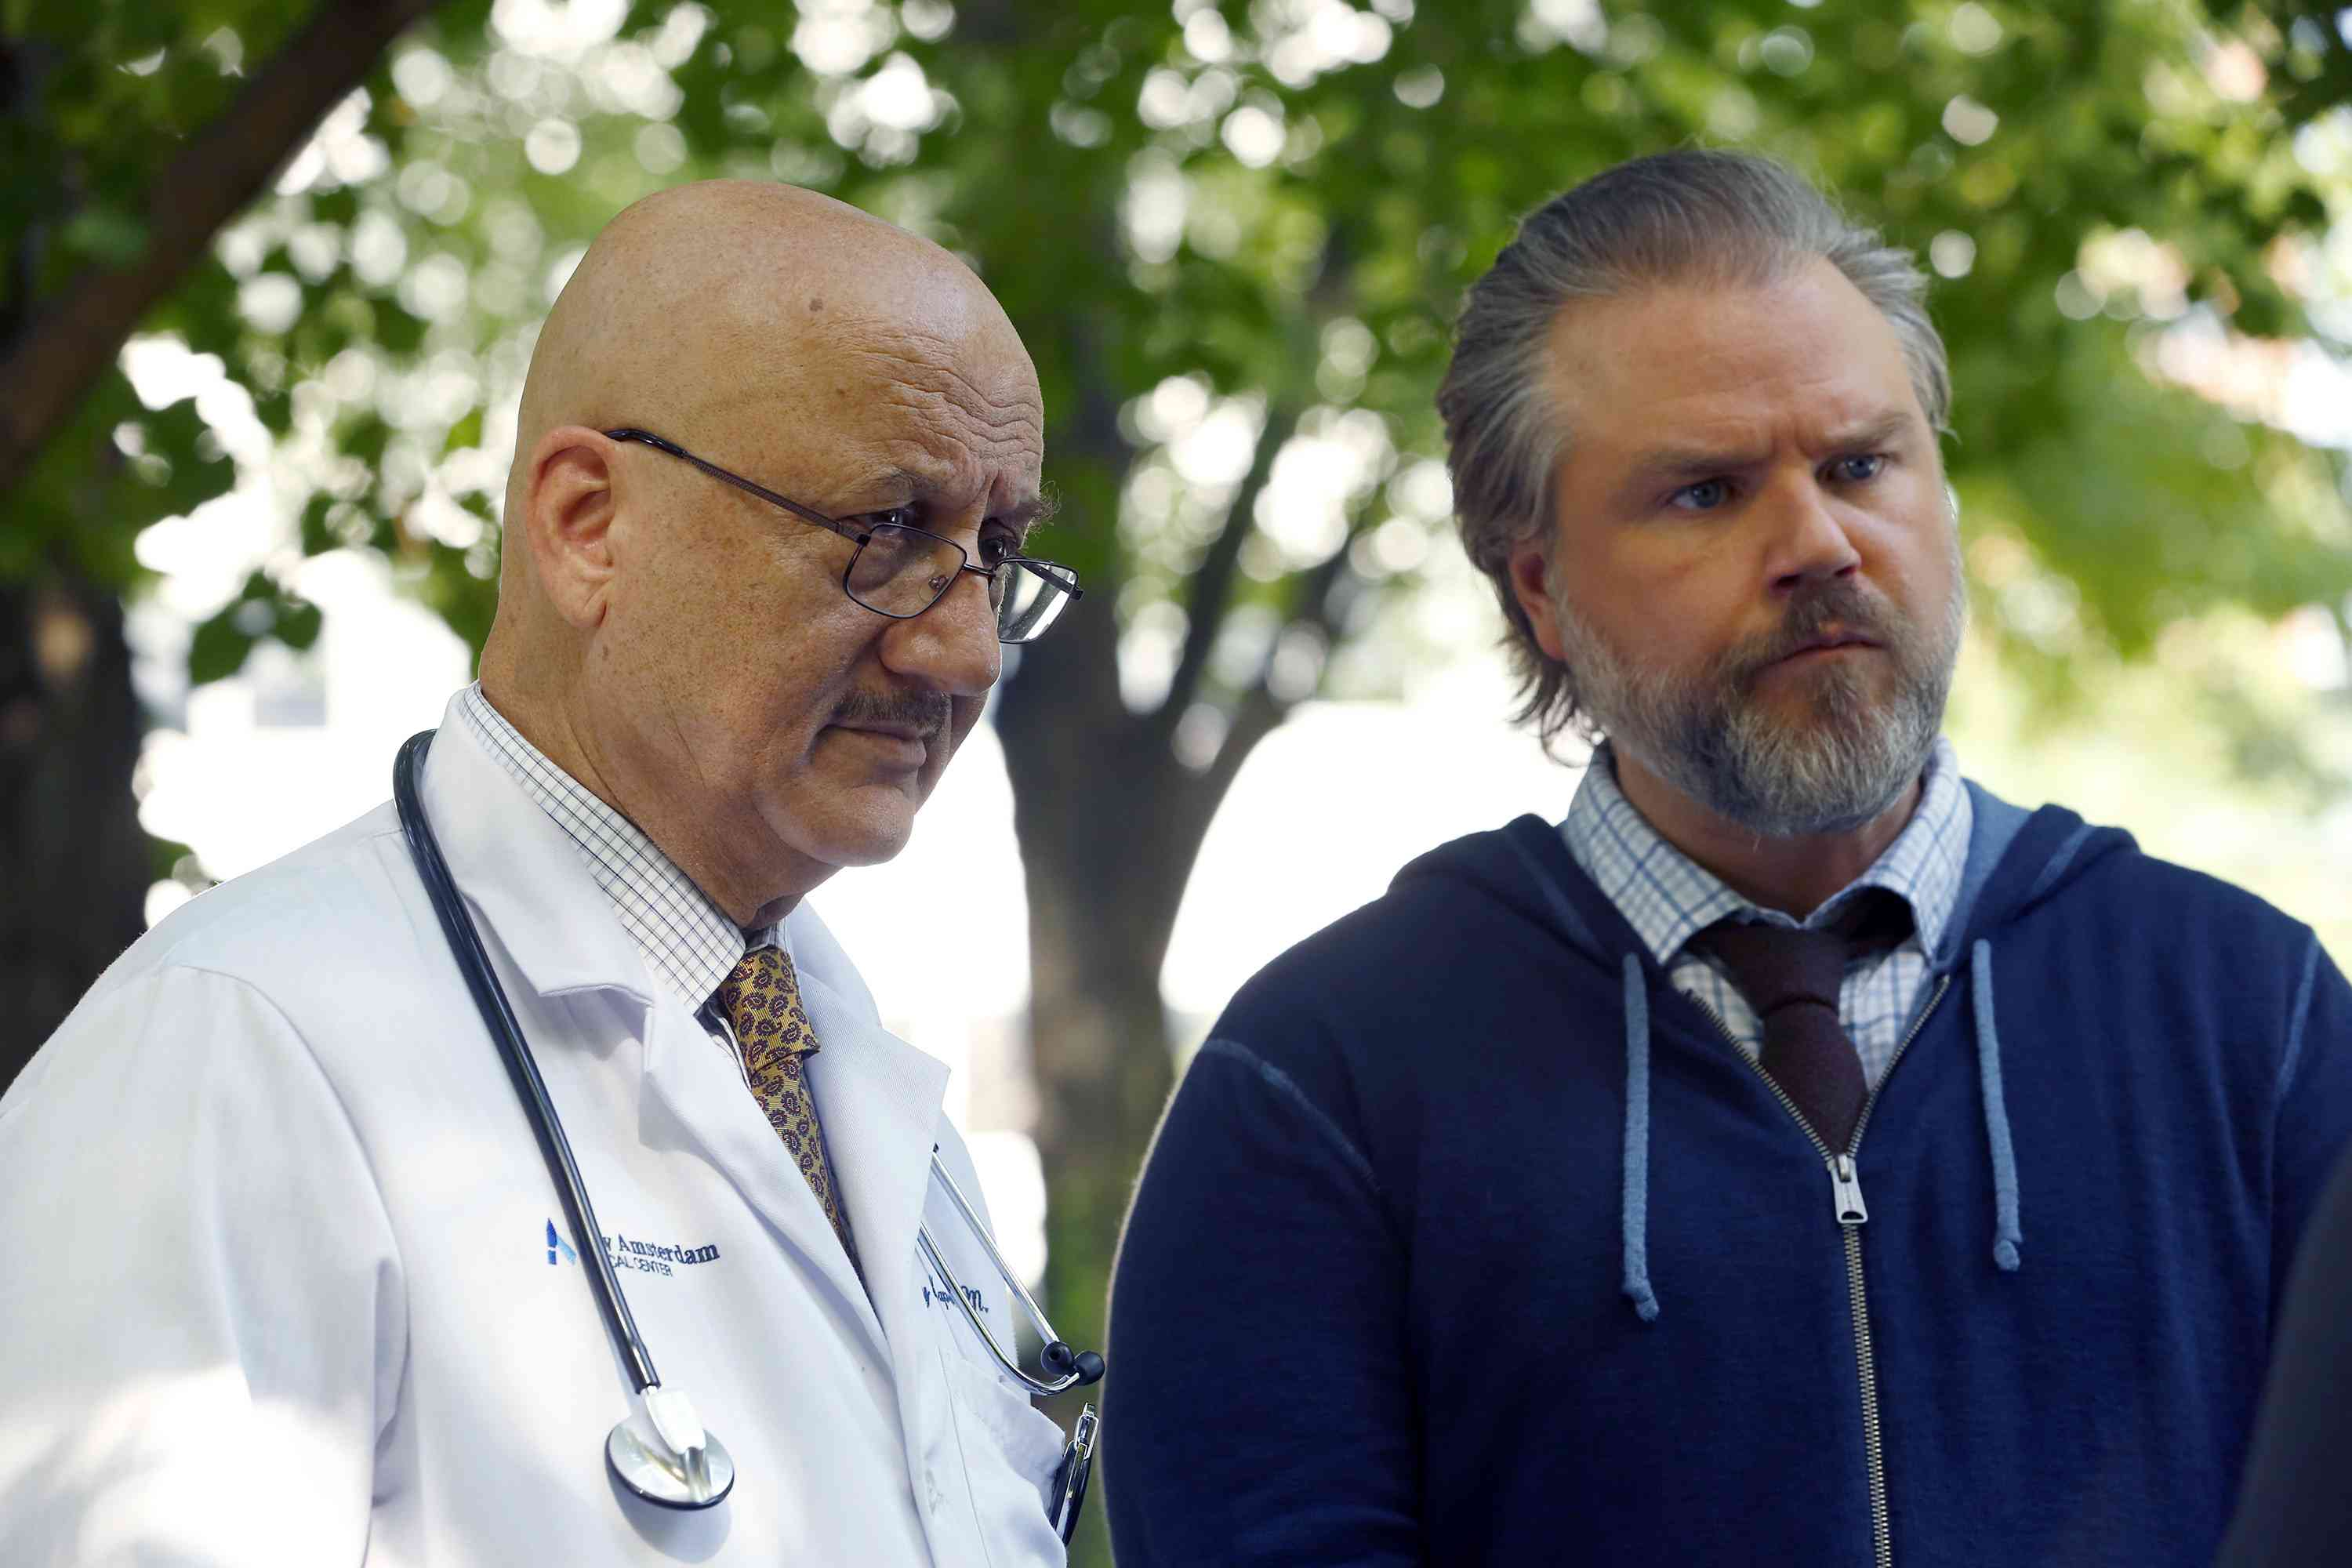 Anupam Kher and Tyler Labine in New Amsterdam. Courtesy Viacom 18.